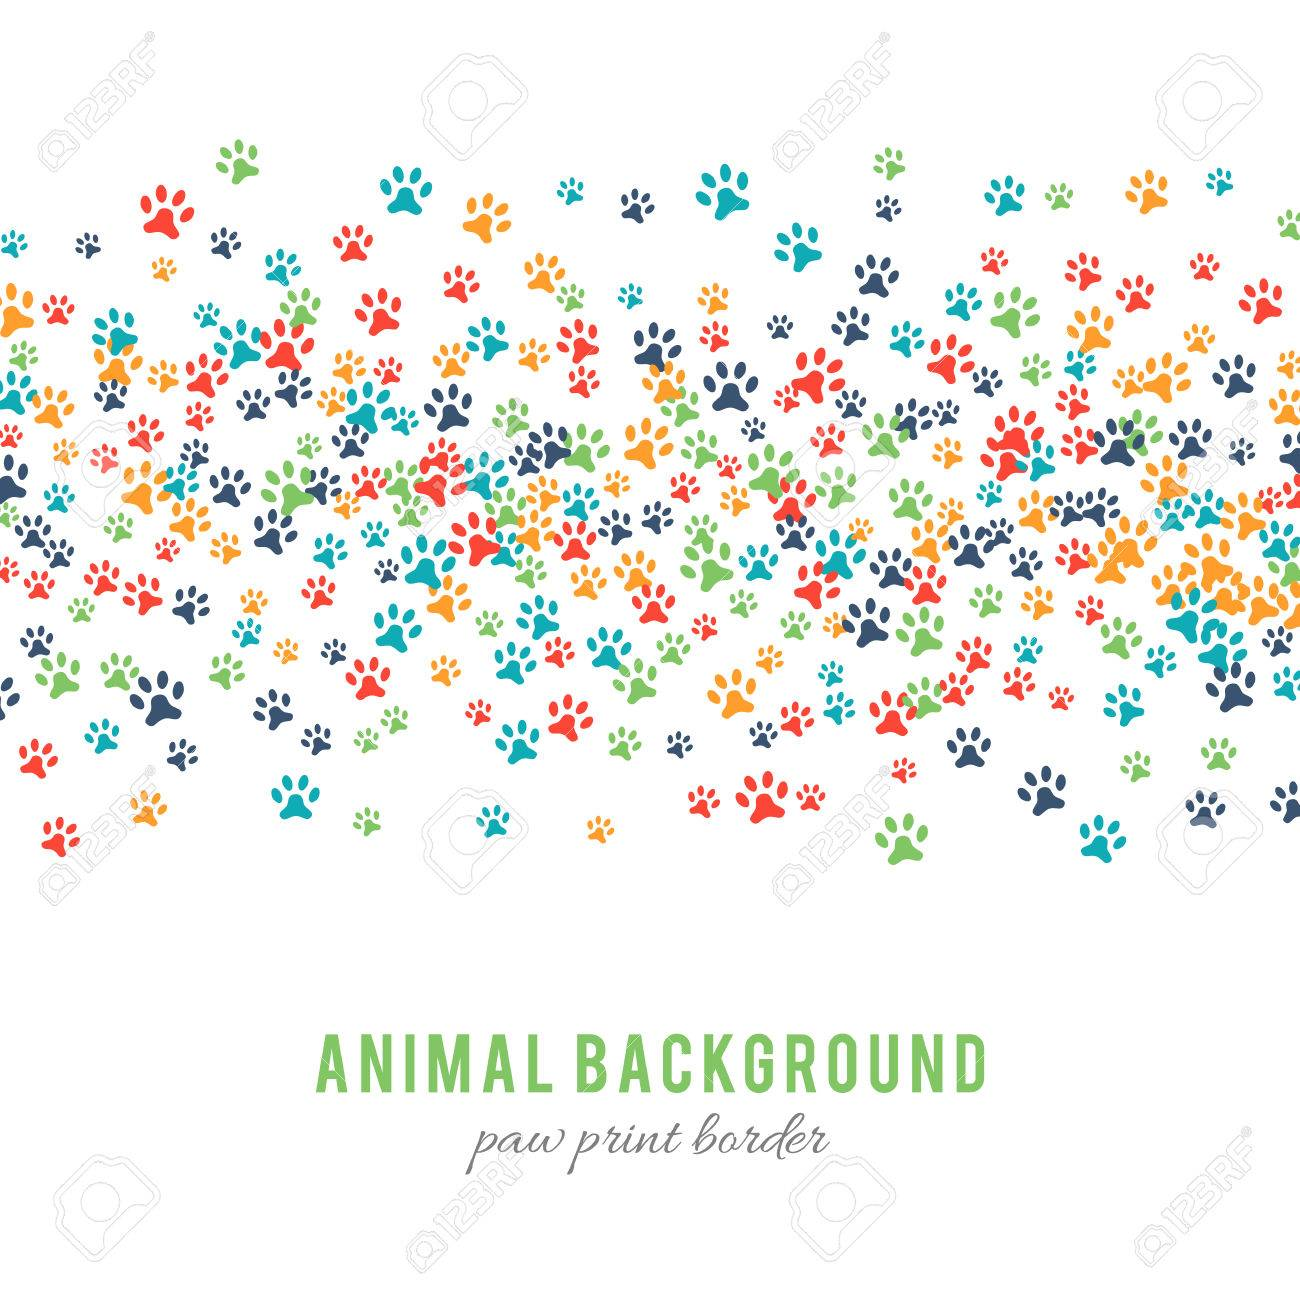 Colorful dog paw prints background isolated on white background. Paw print border design. Animalistic style. Footprint icons. Colorful pet steps. Abstract animal graphic. Vector illustration - 52613750